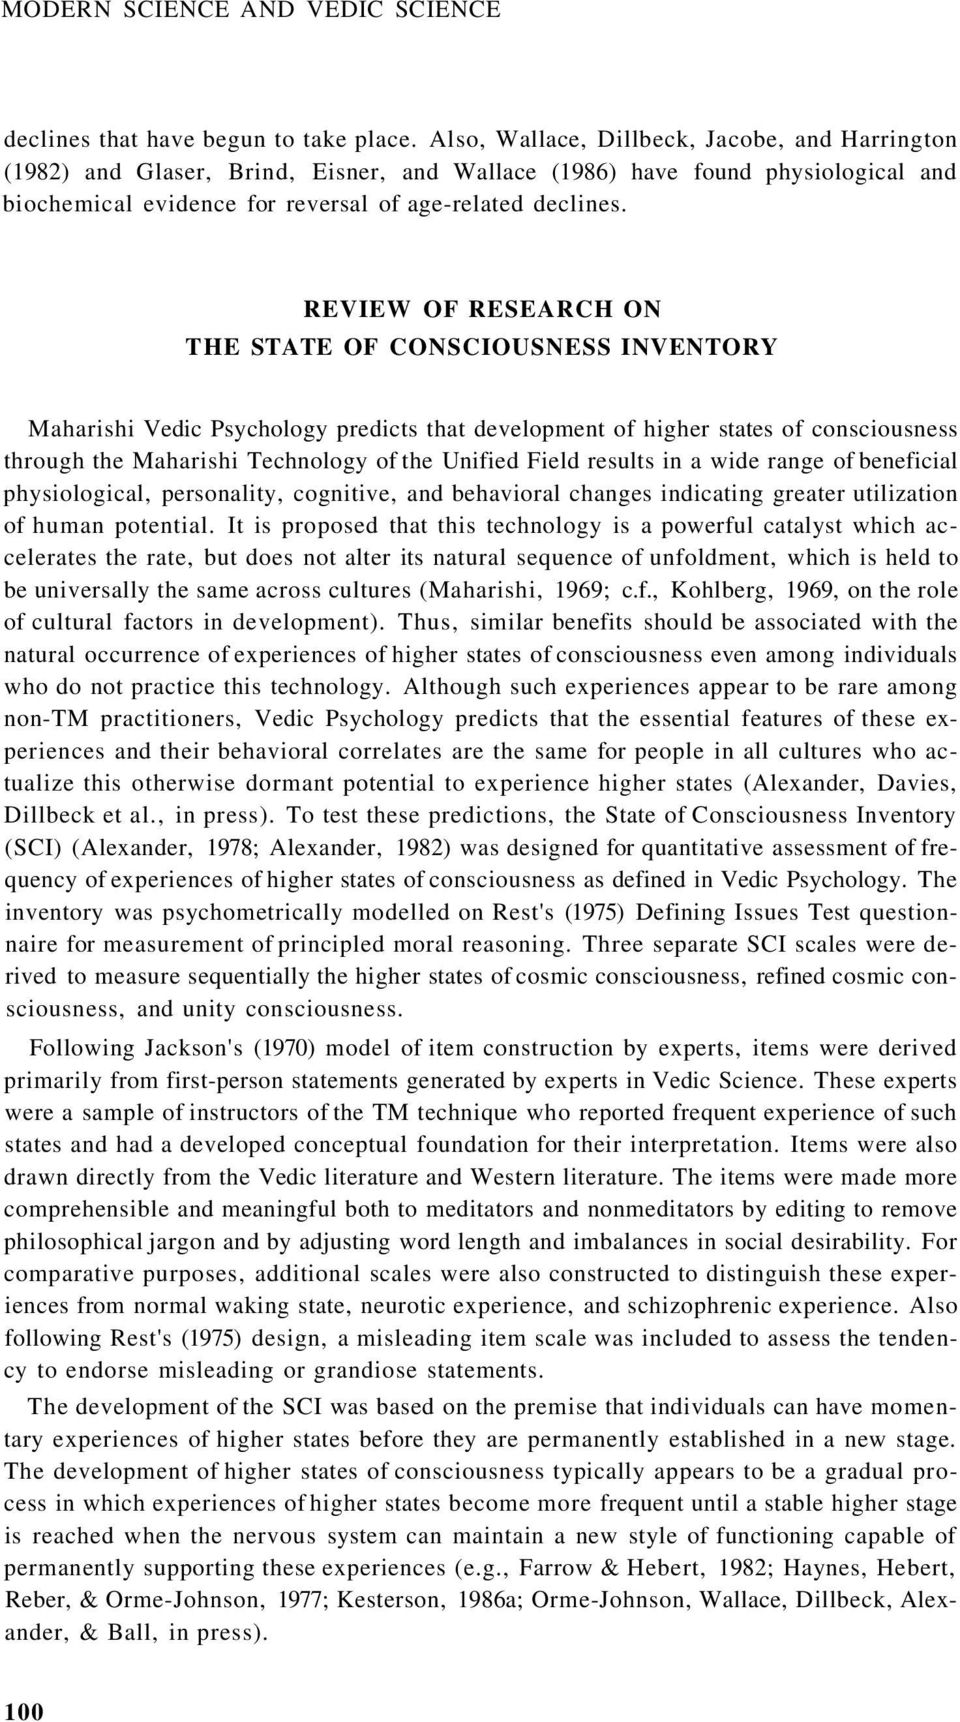 REVIEW OF RESEARCH ON THE STATE OF CONSCIOUSNESS INVENTORY Maharishi Vedic Psychology predicts that development of higher states of consciousness through the Maharishi Technology of the Unified Field